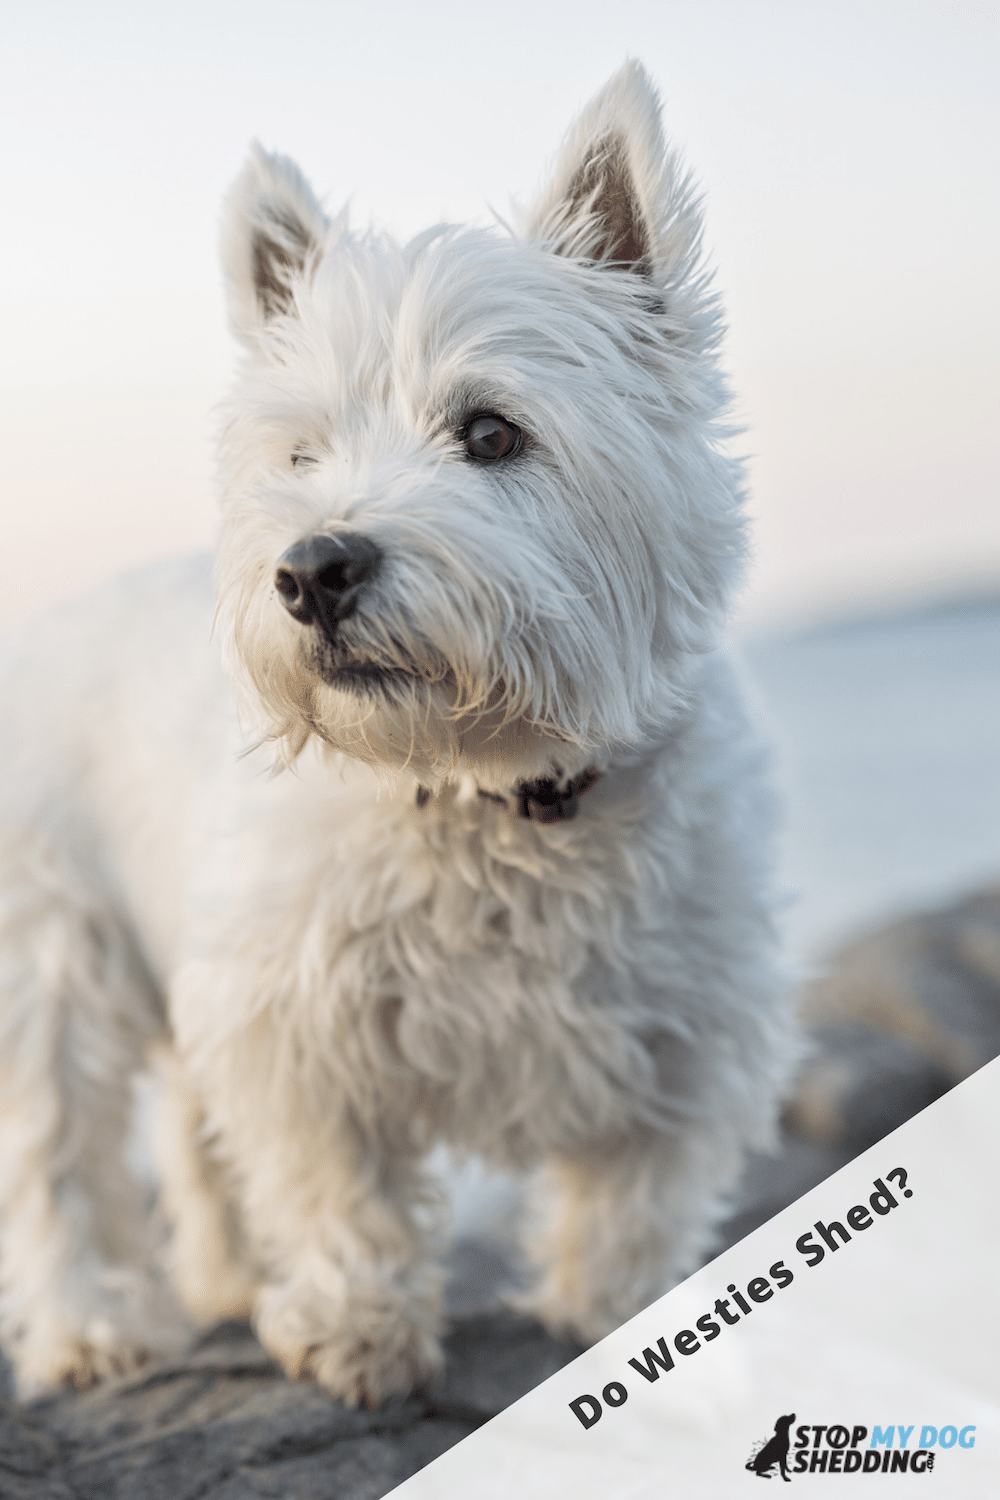 Do West Highland White Terriers Shed?